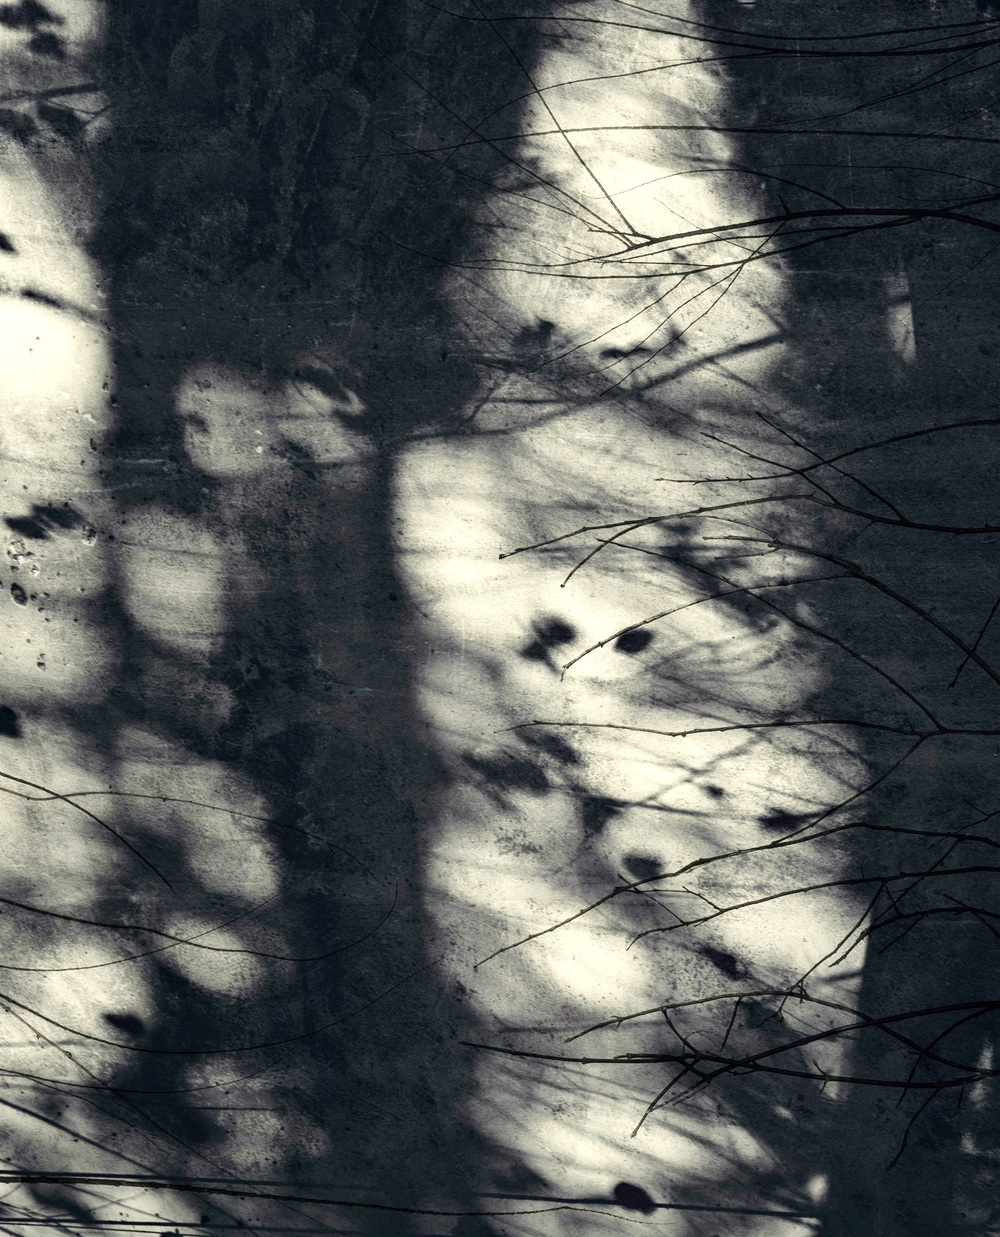 Jocelyne Allucherie Trois de Nuit 4, 2014 Shadows:  Three of Day and Three of Night Series injet photograph on canvas